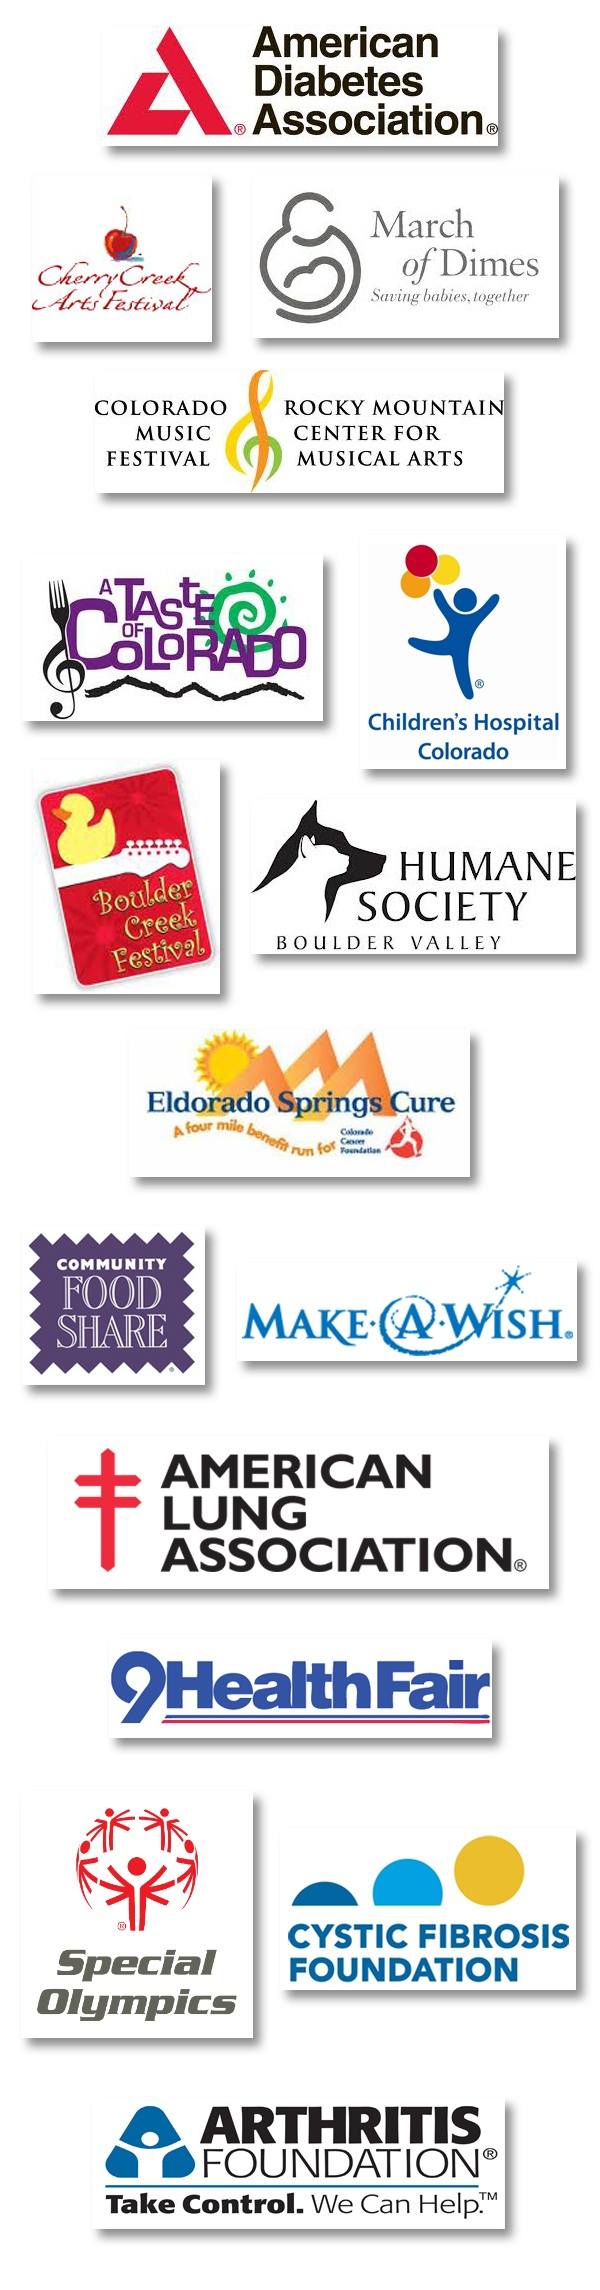 List of organizations, charities, and events that Eldorado Water supports through donation and sponsorship.